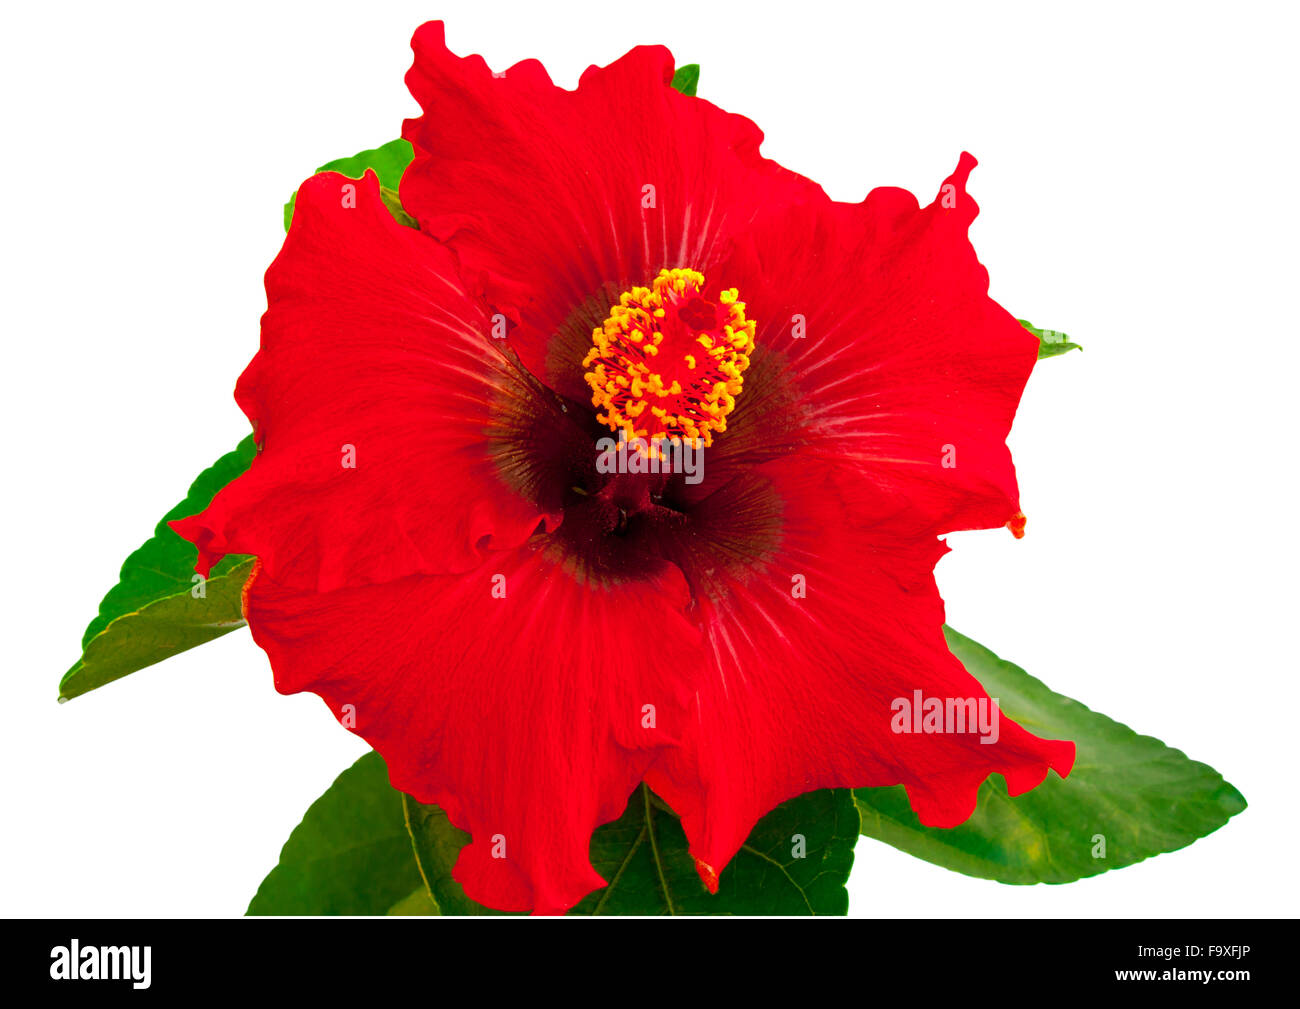 Spanish lady hibiscus flower on a white background stock photo spanish lady hibiscus flower on a white background izmirmasajfo